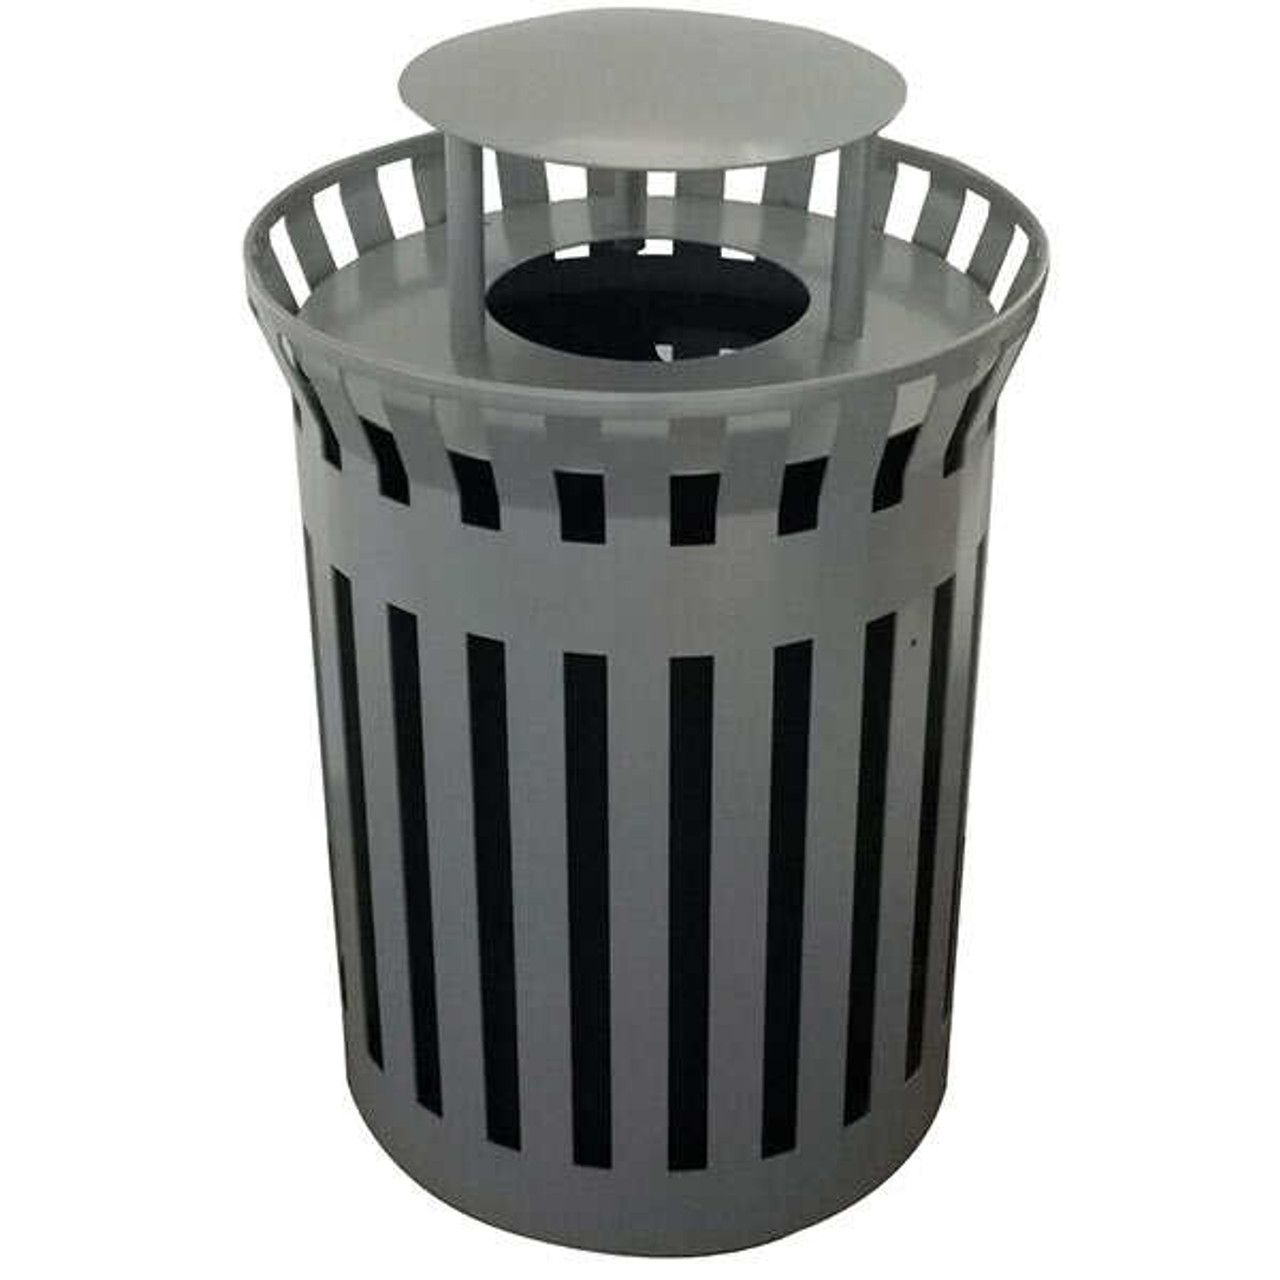 33 Gallon Flat Steel Waste Container with Rain Hood Top MF3299